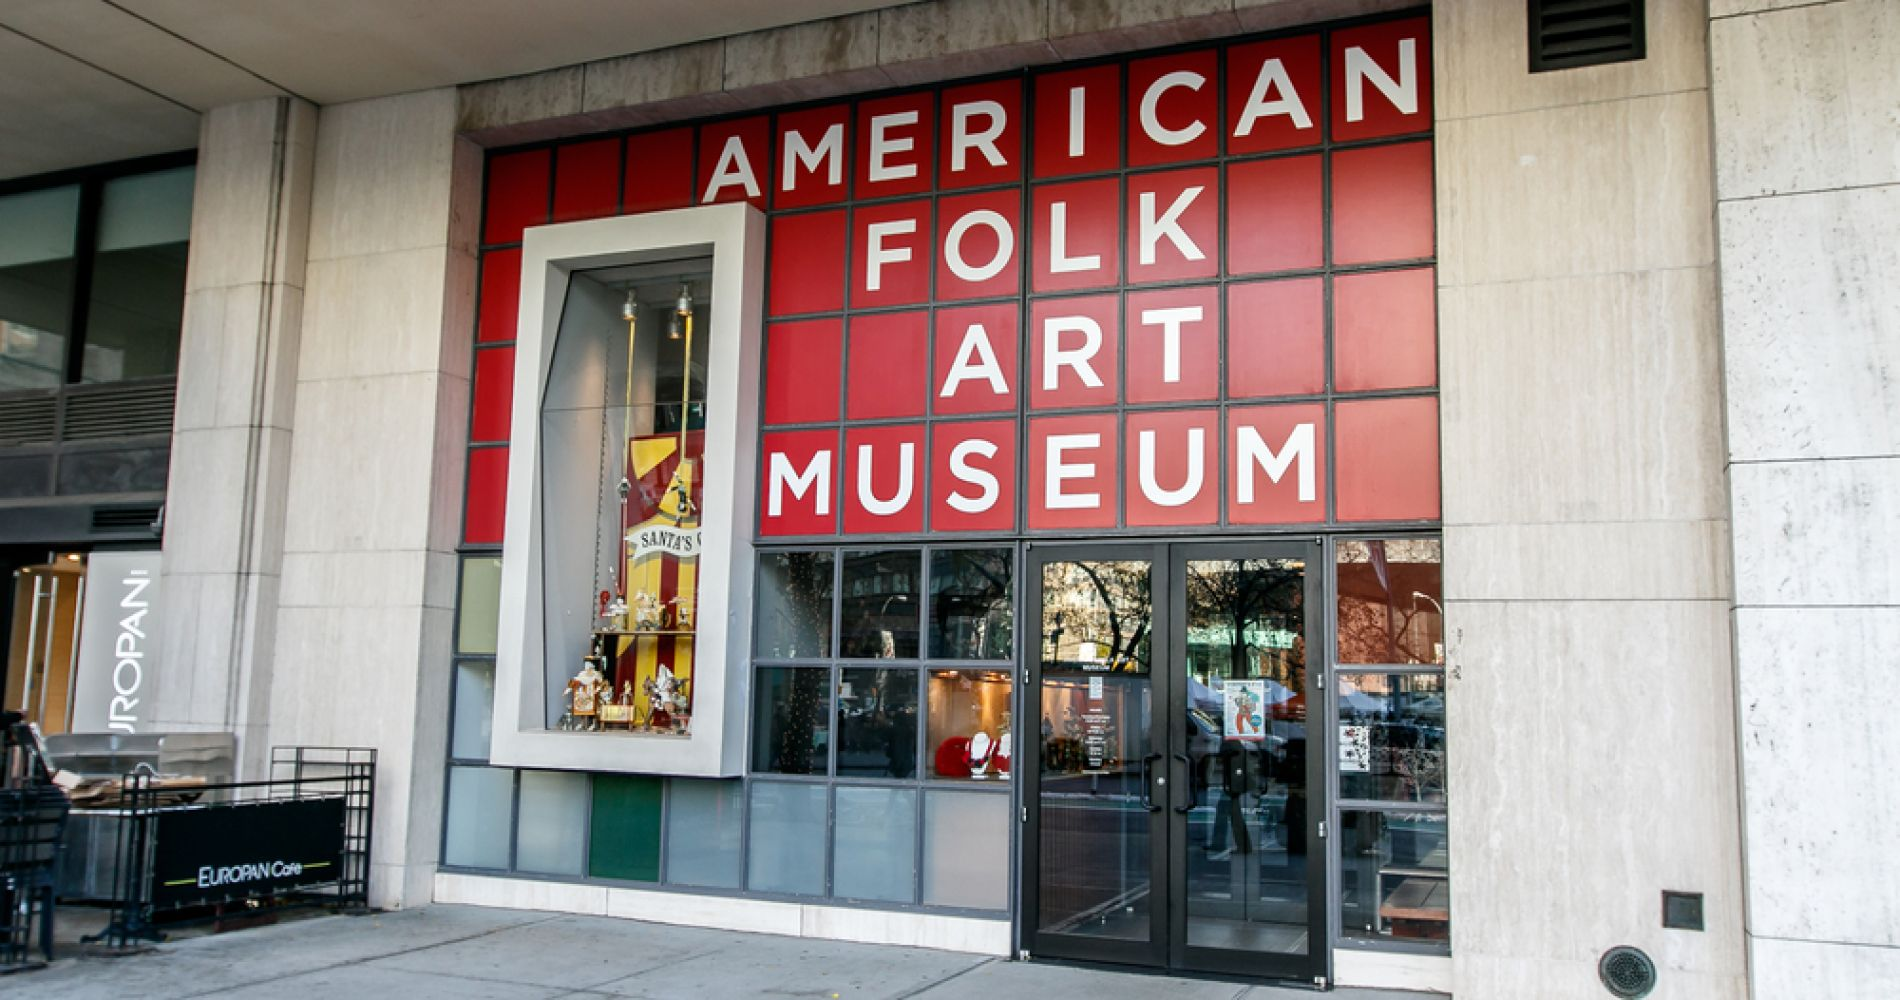 Get cultural at New York free museums